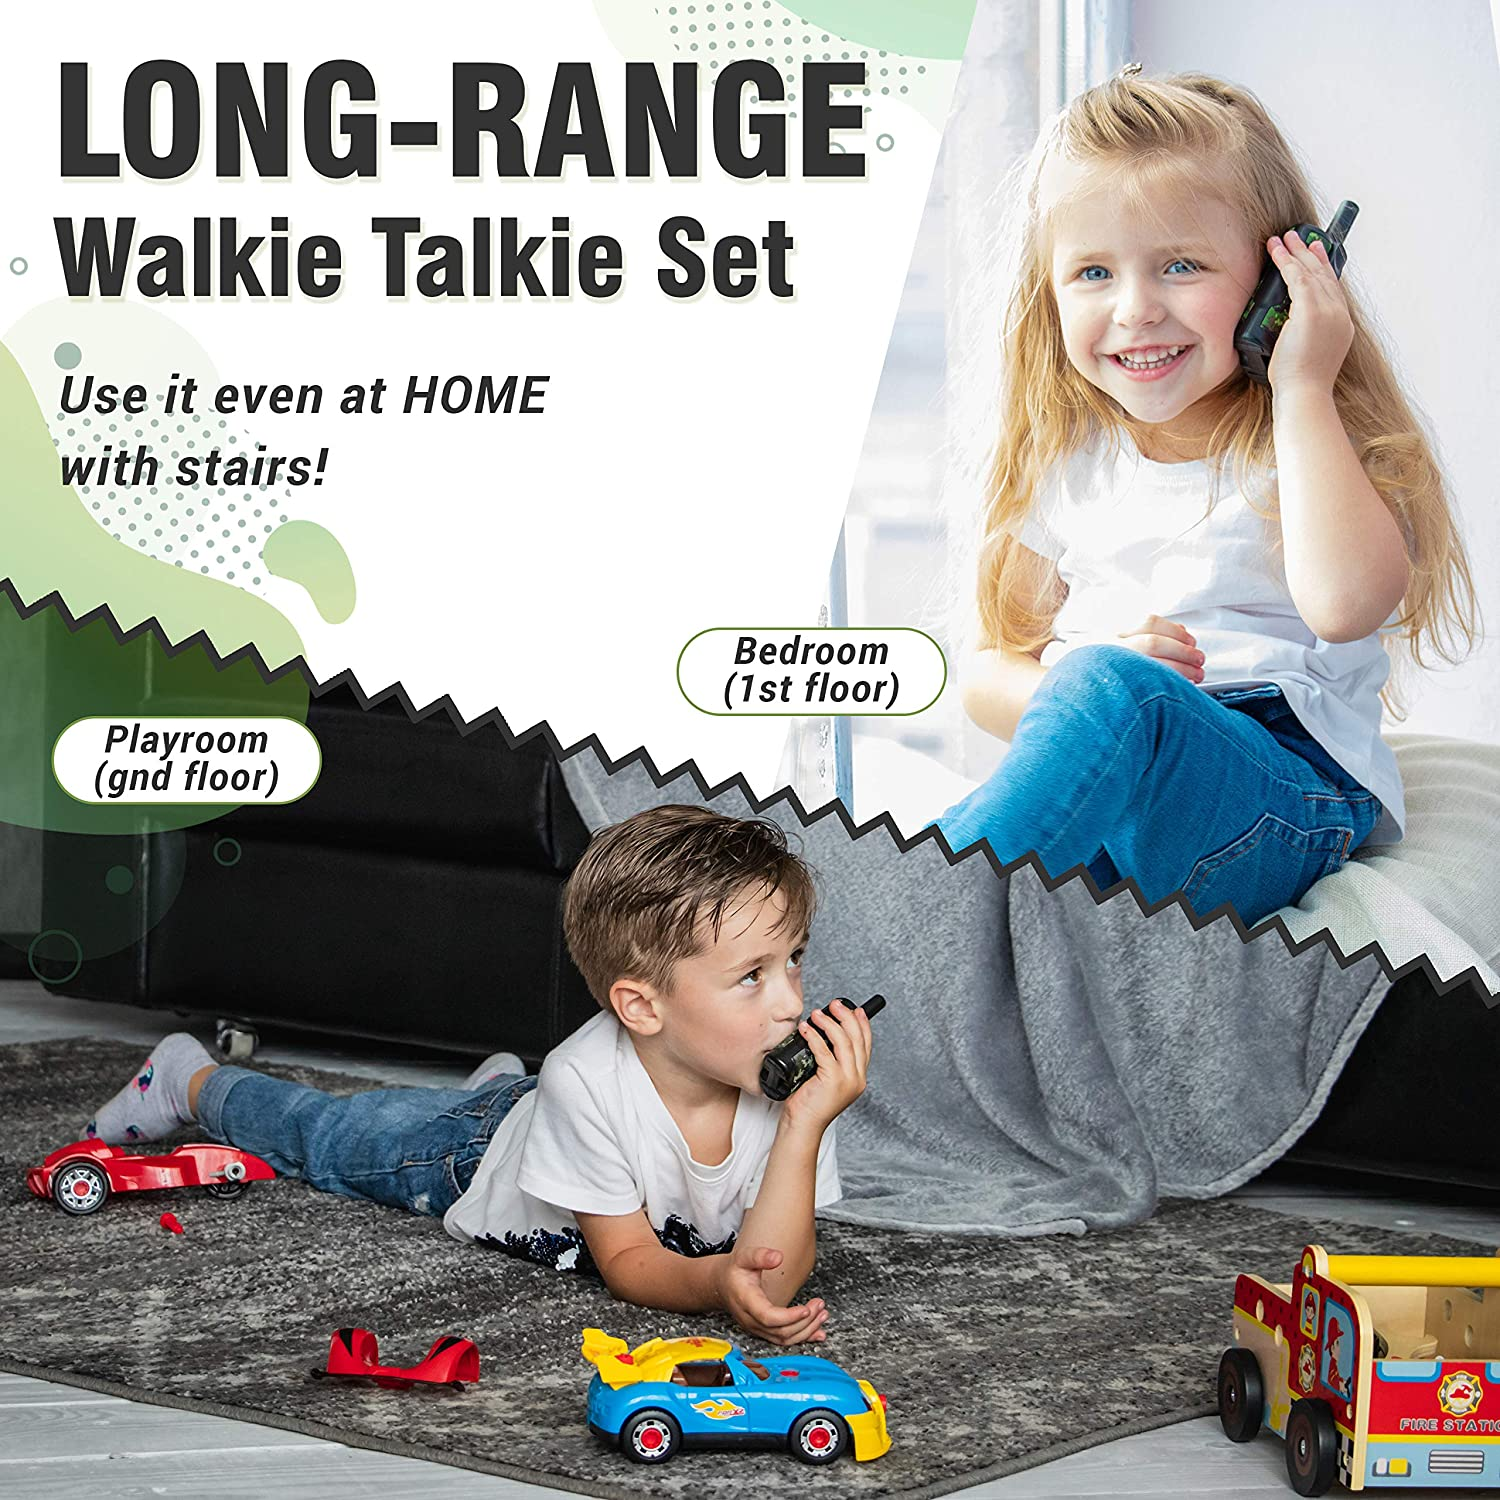 JAMTOYS Camo Walkie Talkies for Kids Set of 2 Birthday for Children 4 Miles Long-Range 22 Channel Two-Way Radio Toys for Boys and Girls